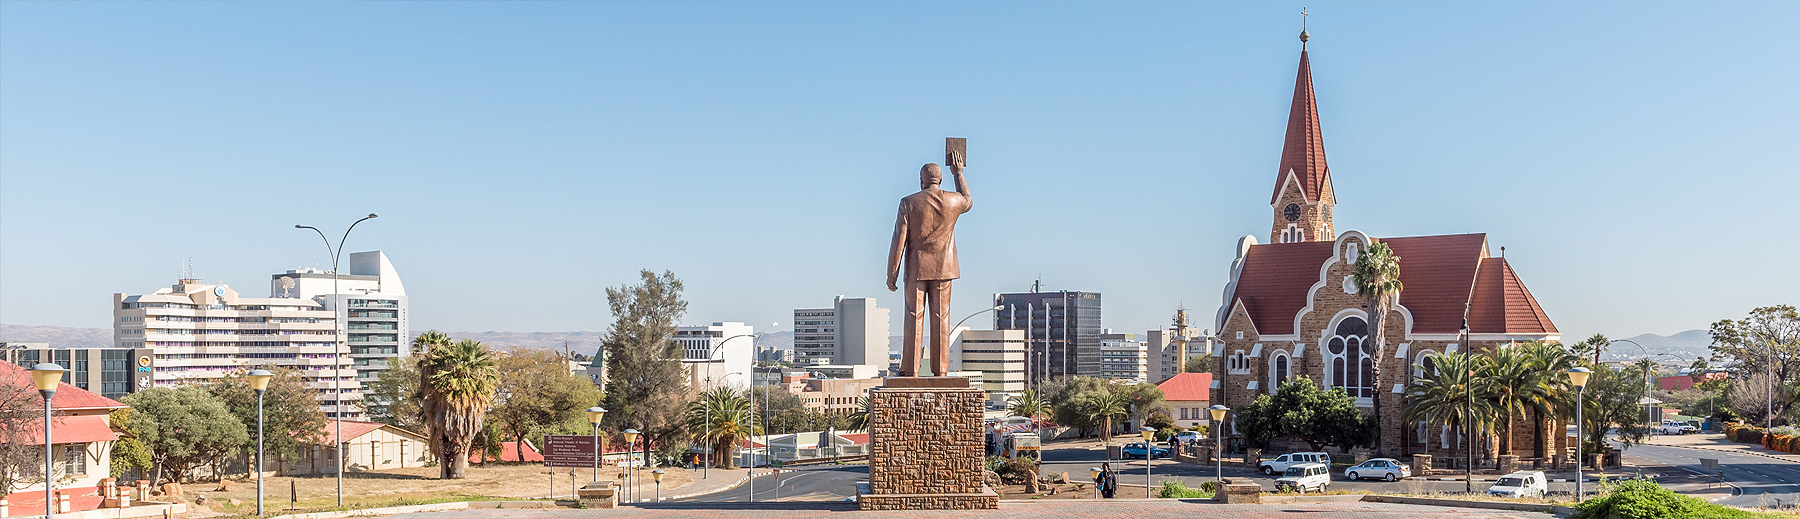 A panoramic view of Windhoek city and the iconic Christ Church taken from behind the Independence Memorial statue.